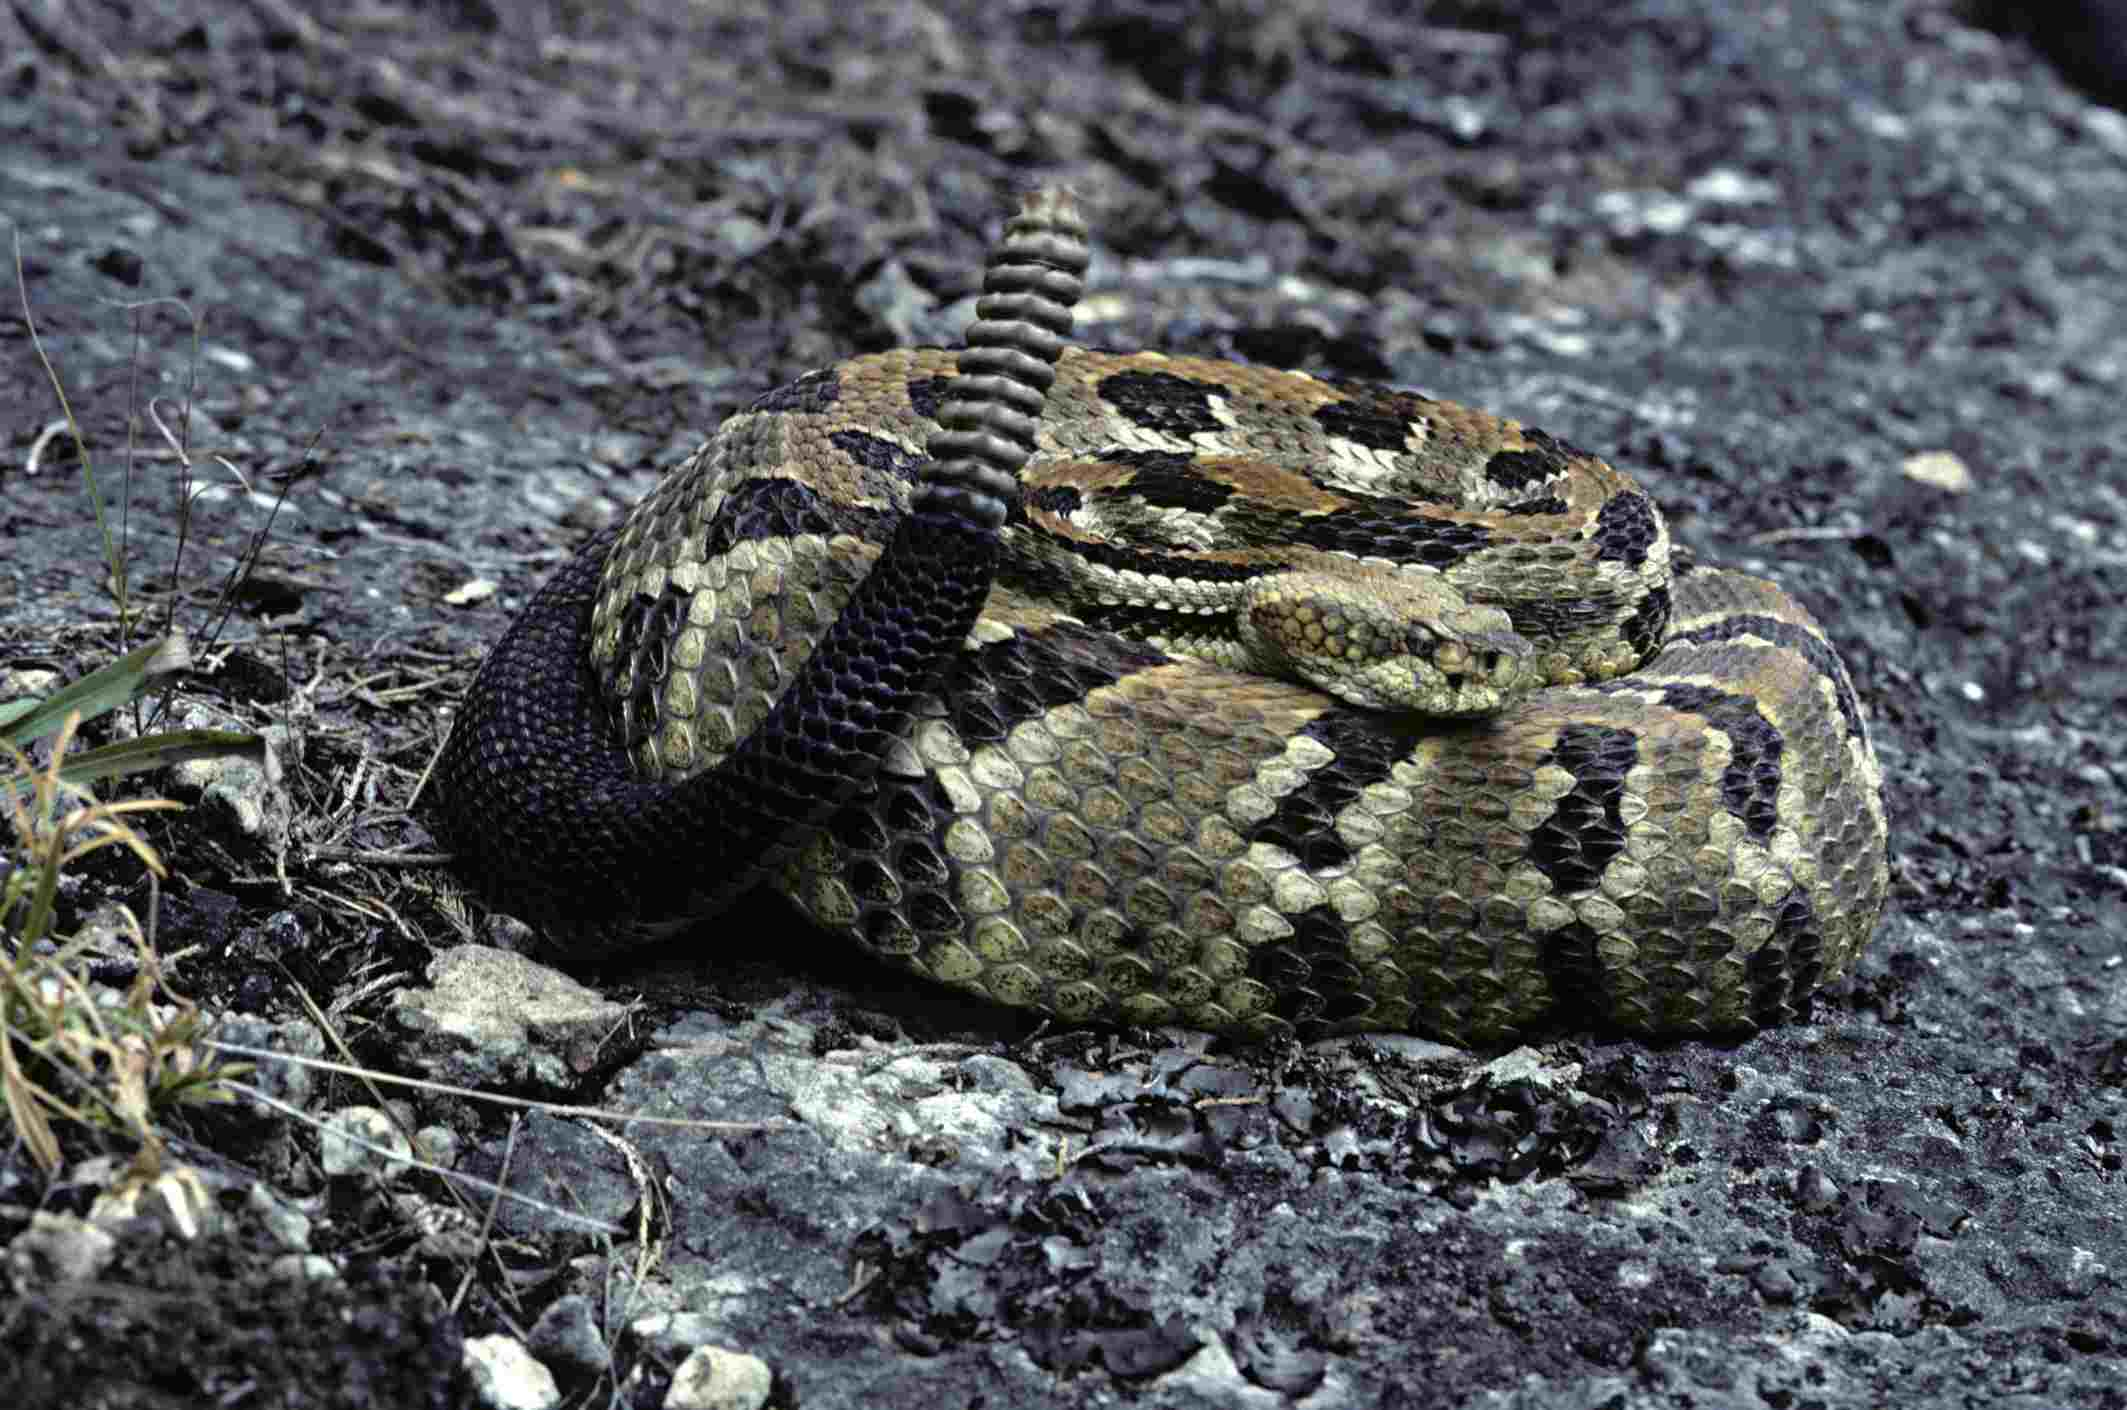 The Venomous Snakes of Tennessee